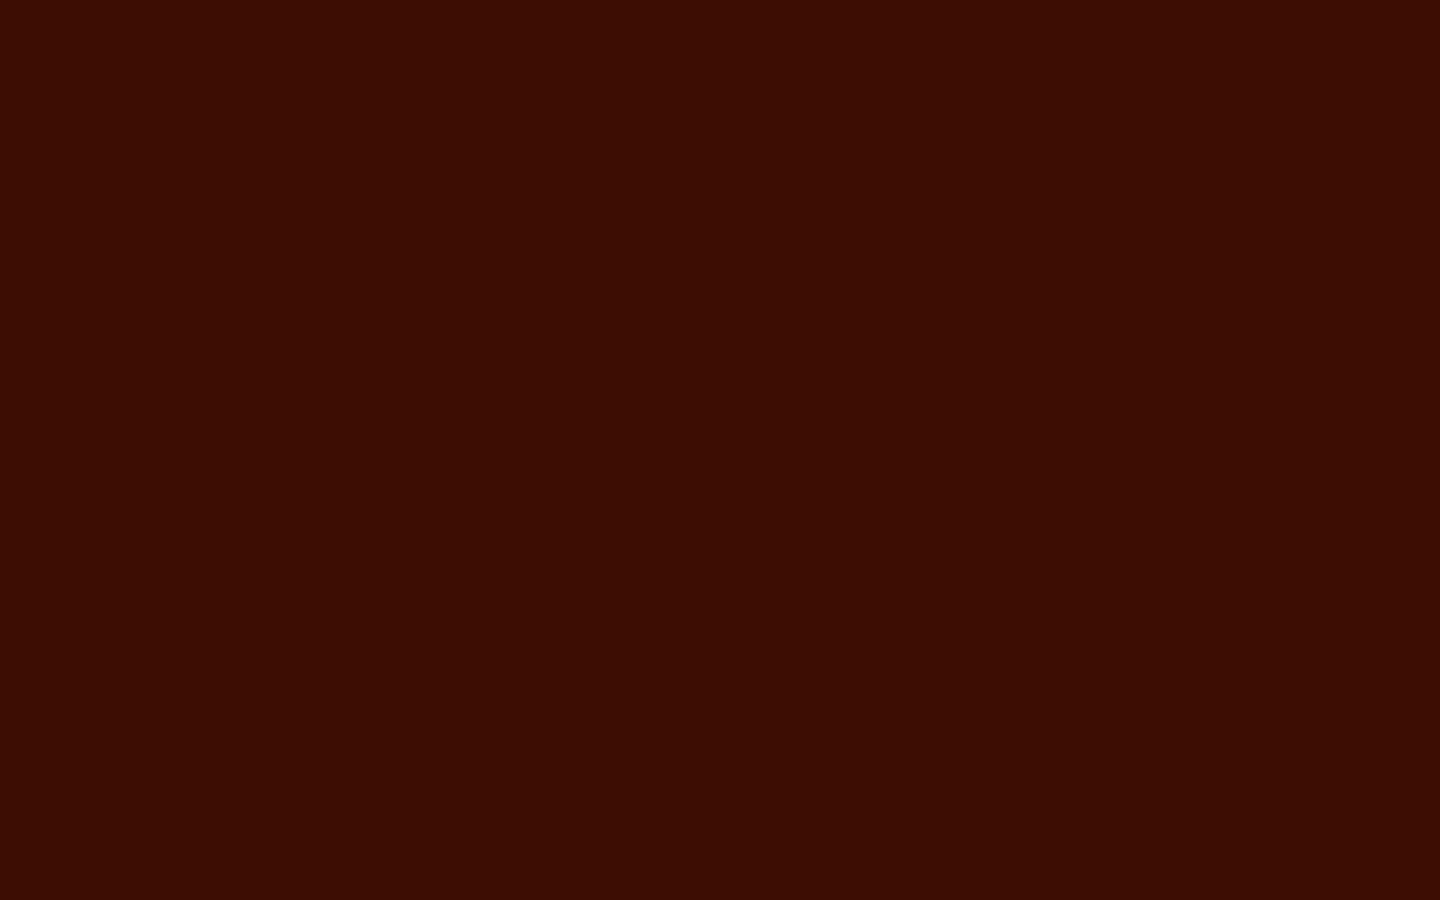 1440x900 Black Bean Solid Color Background